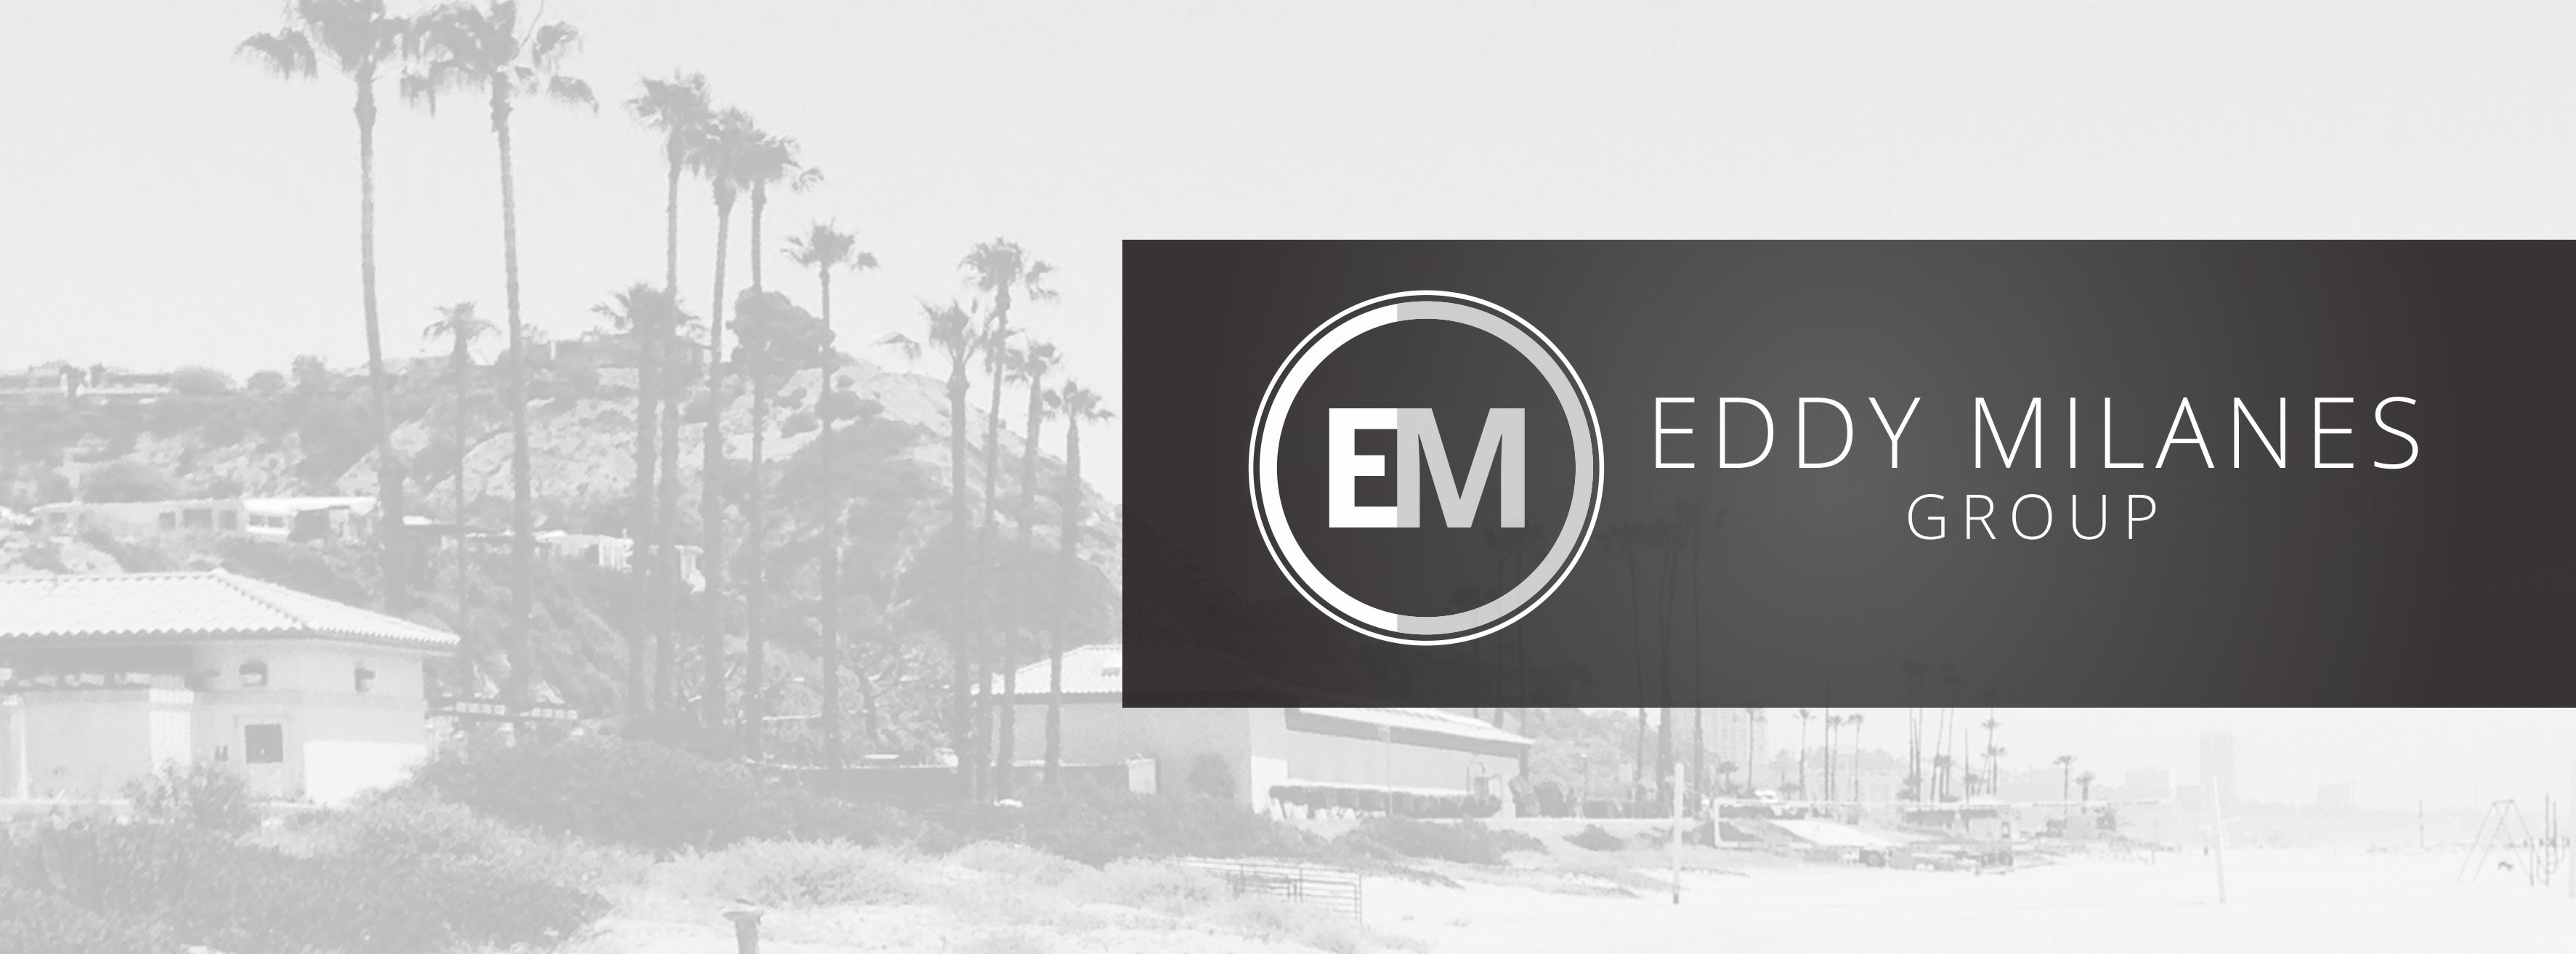 EddyMilanes-Group-FB-Cover-HiRes